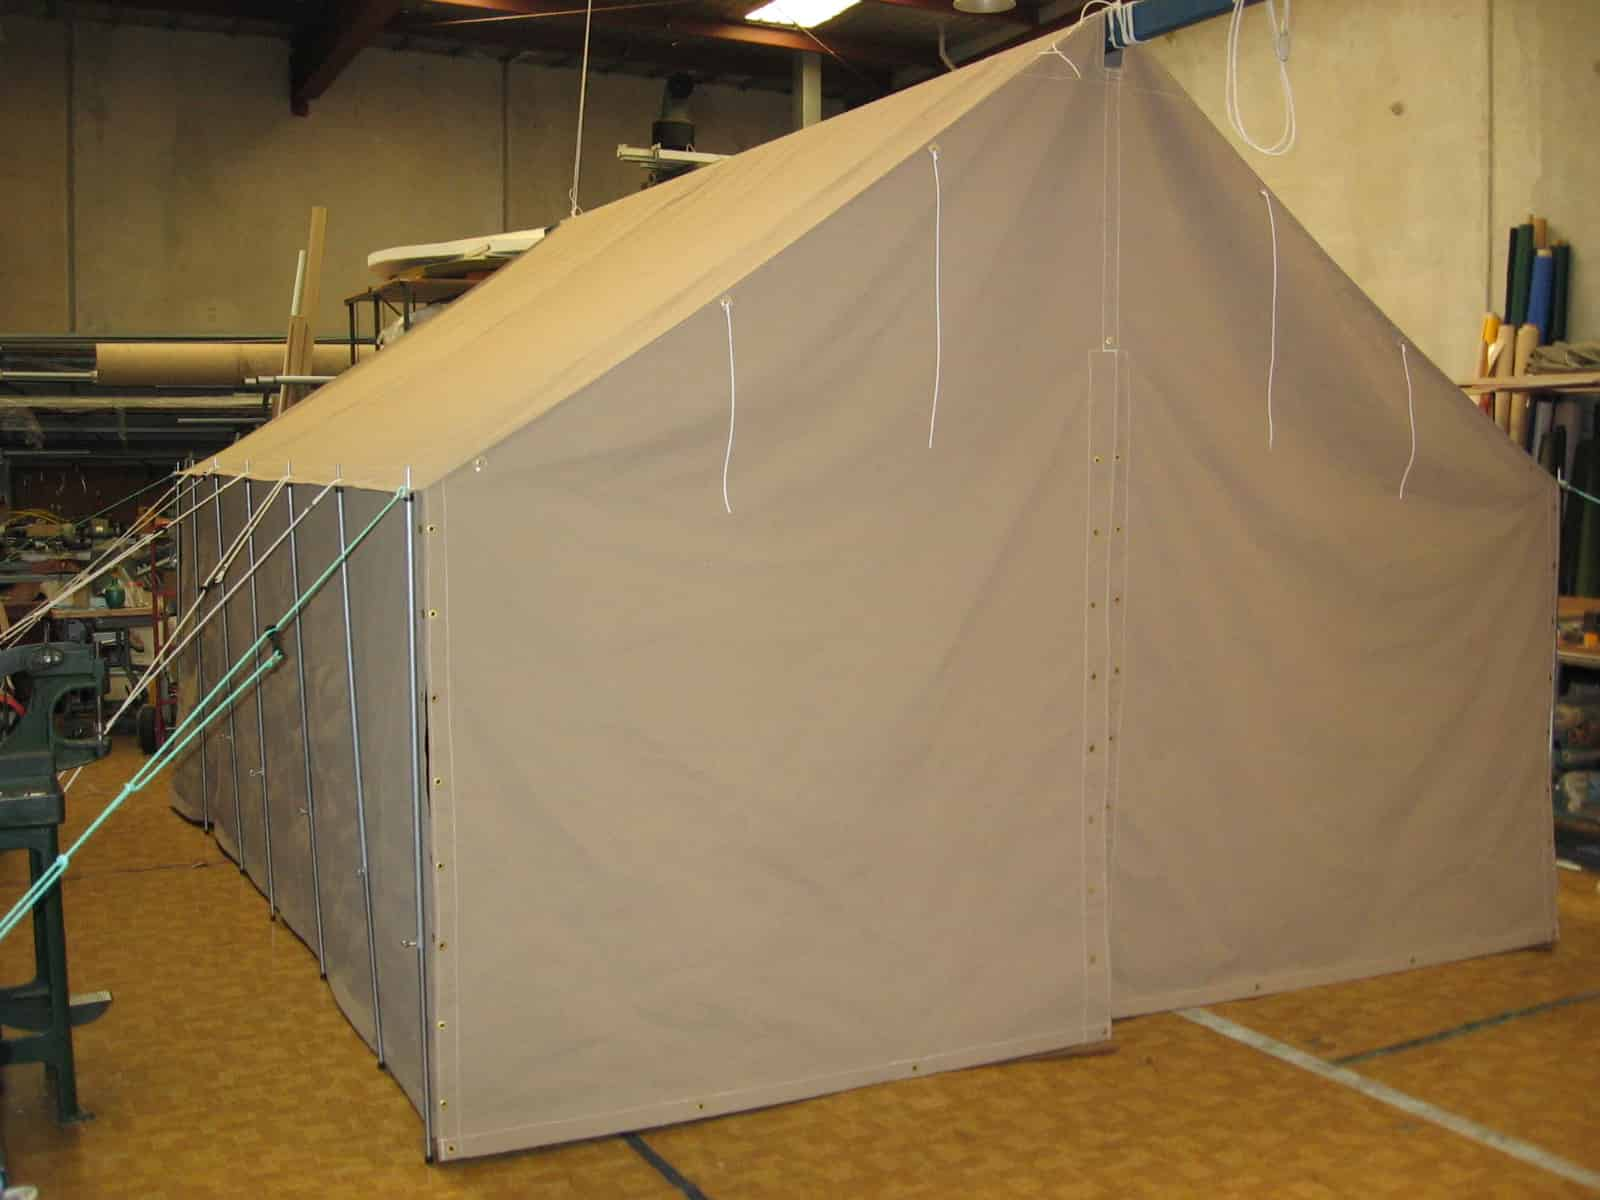 Australian Canvas Tents & Australian Made Canvas Tents | Australian Canvas Co.